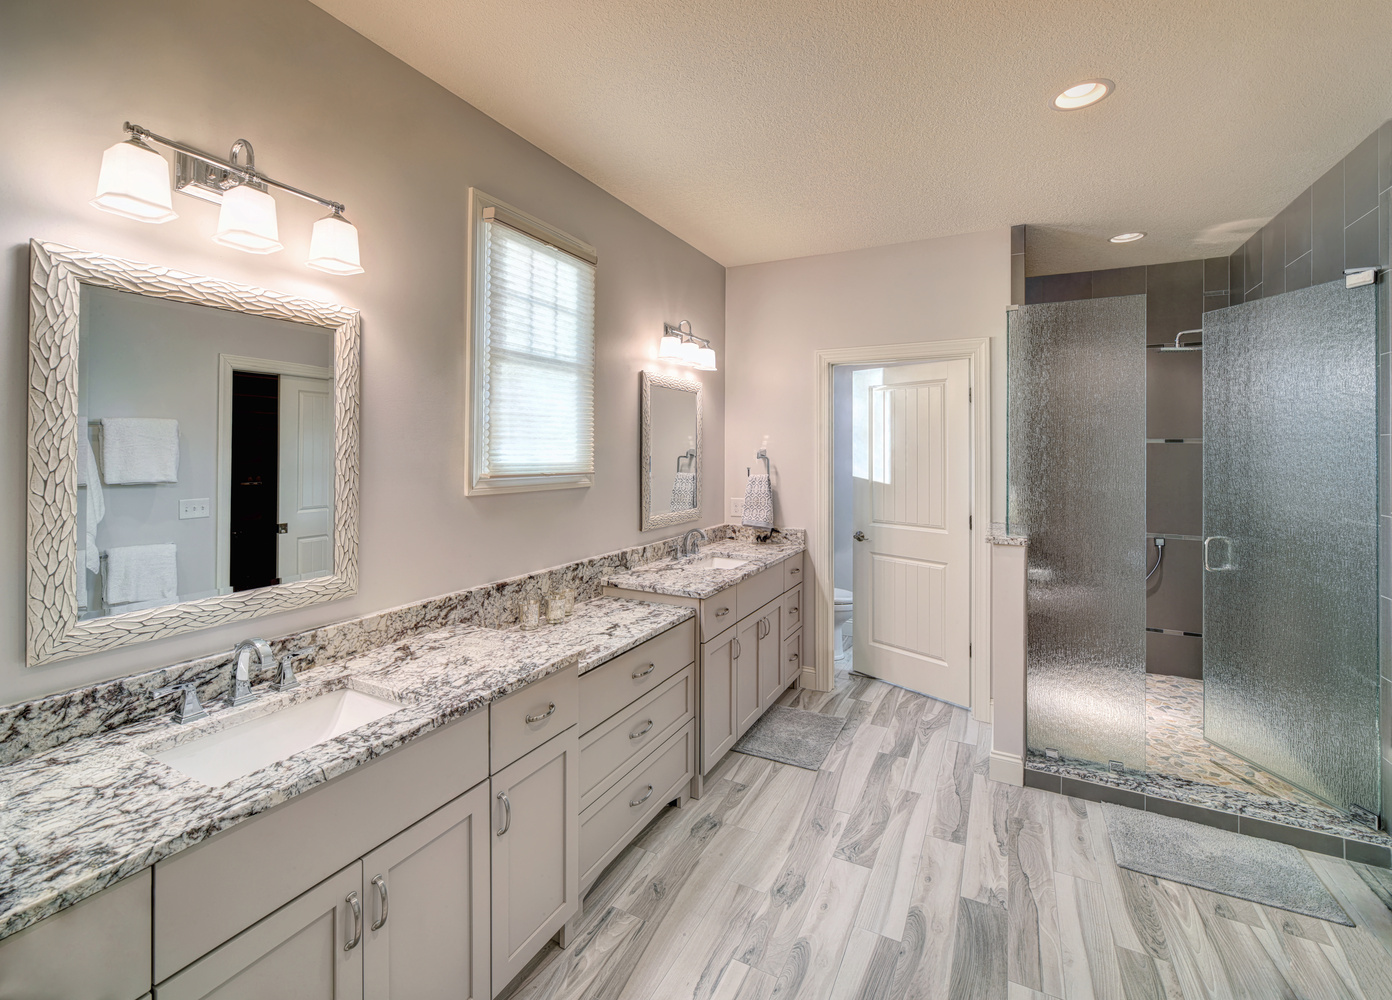 Interior Architectural Bathroom Image by Anthony Harden